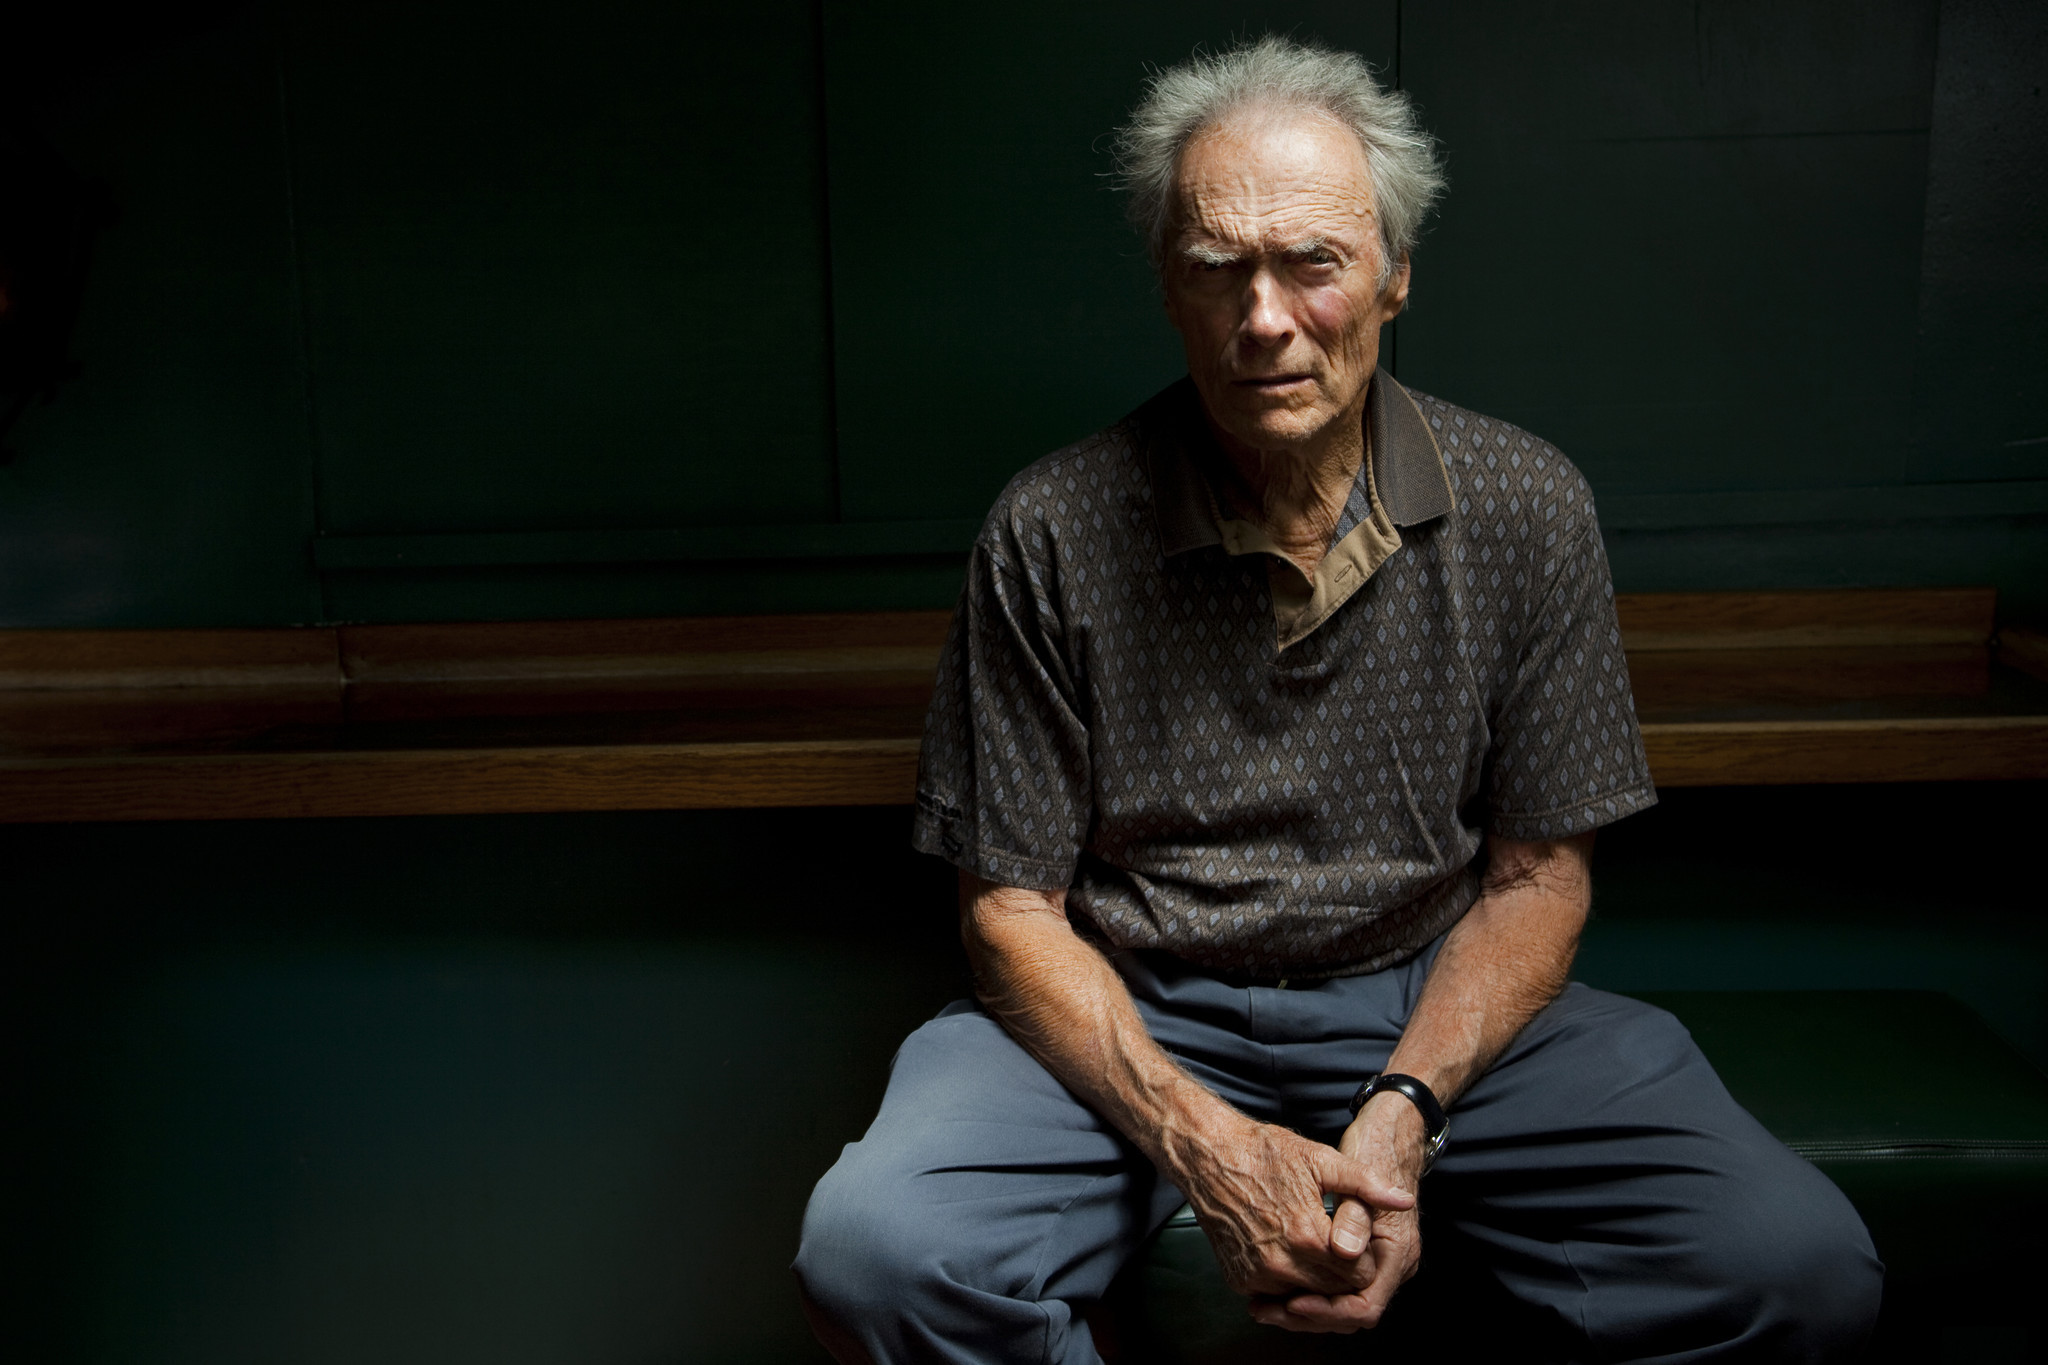 Clint Eastwood directs Paris train terror film